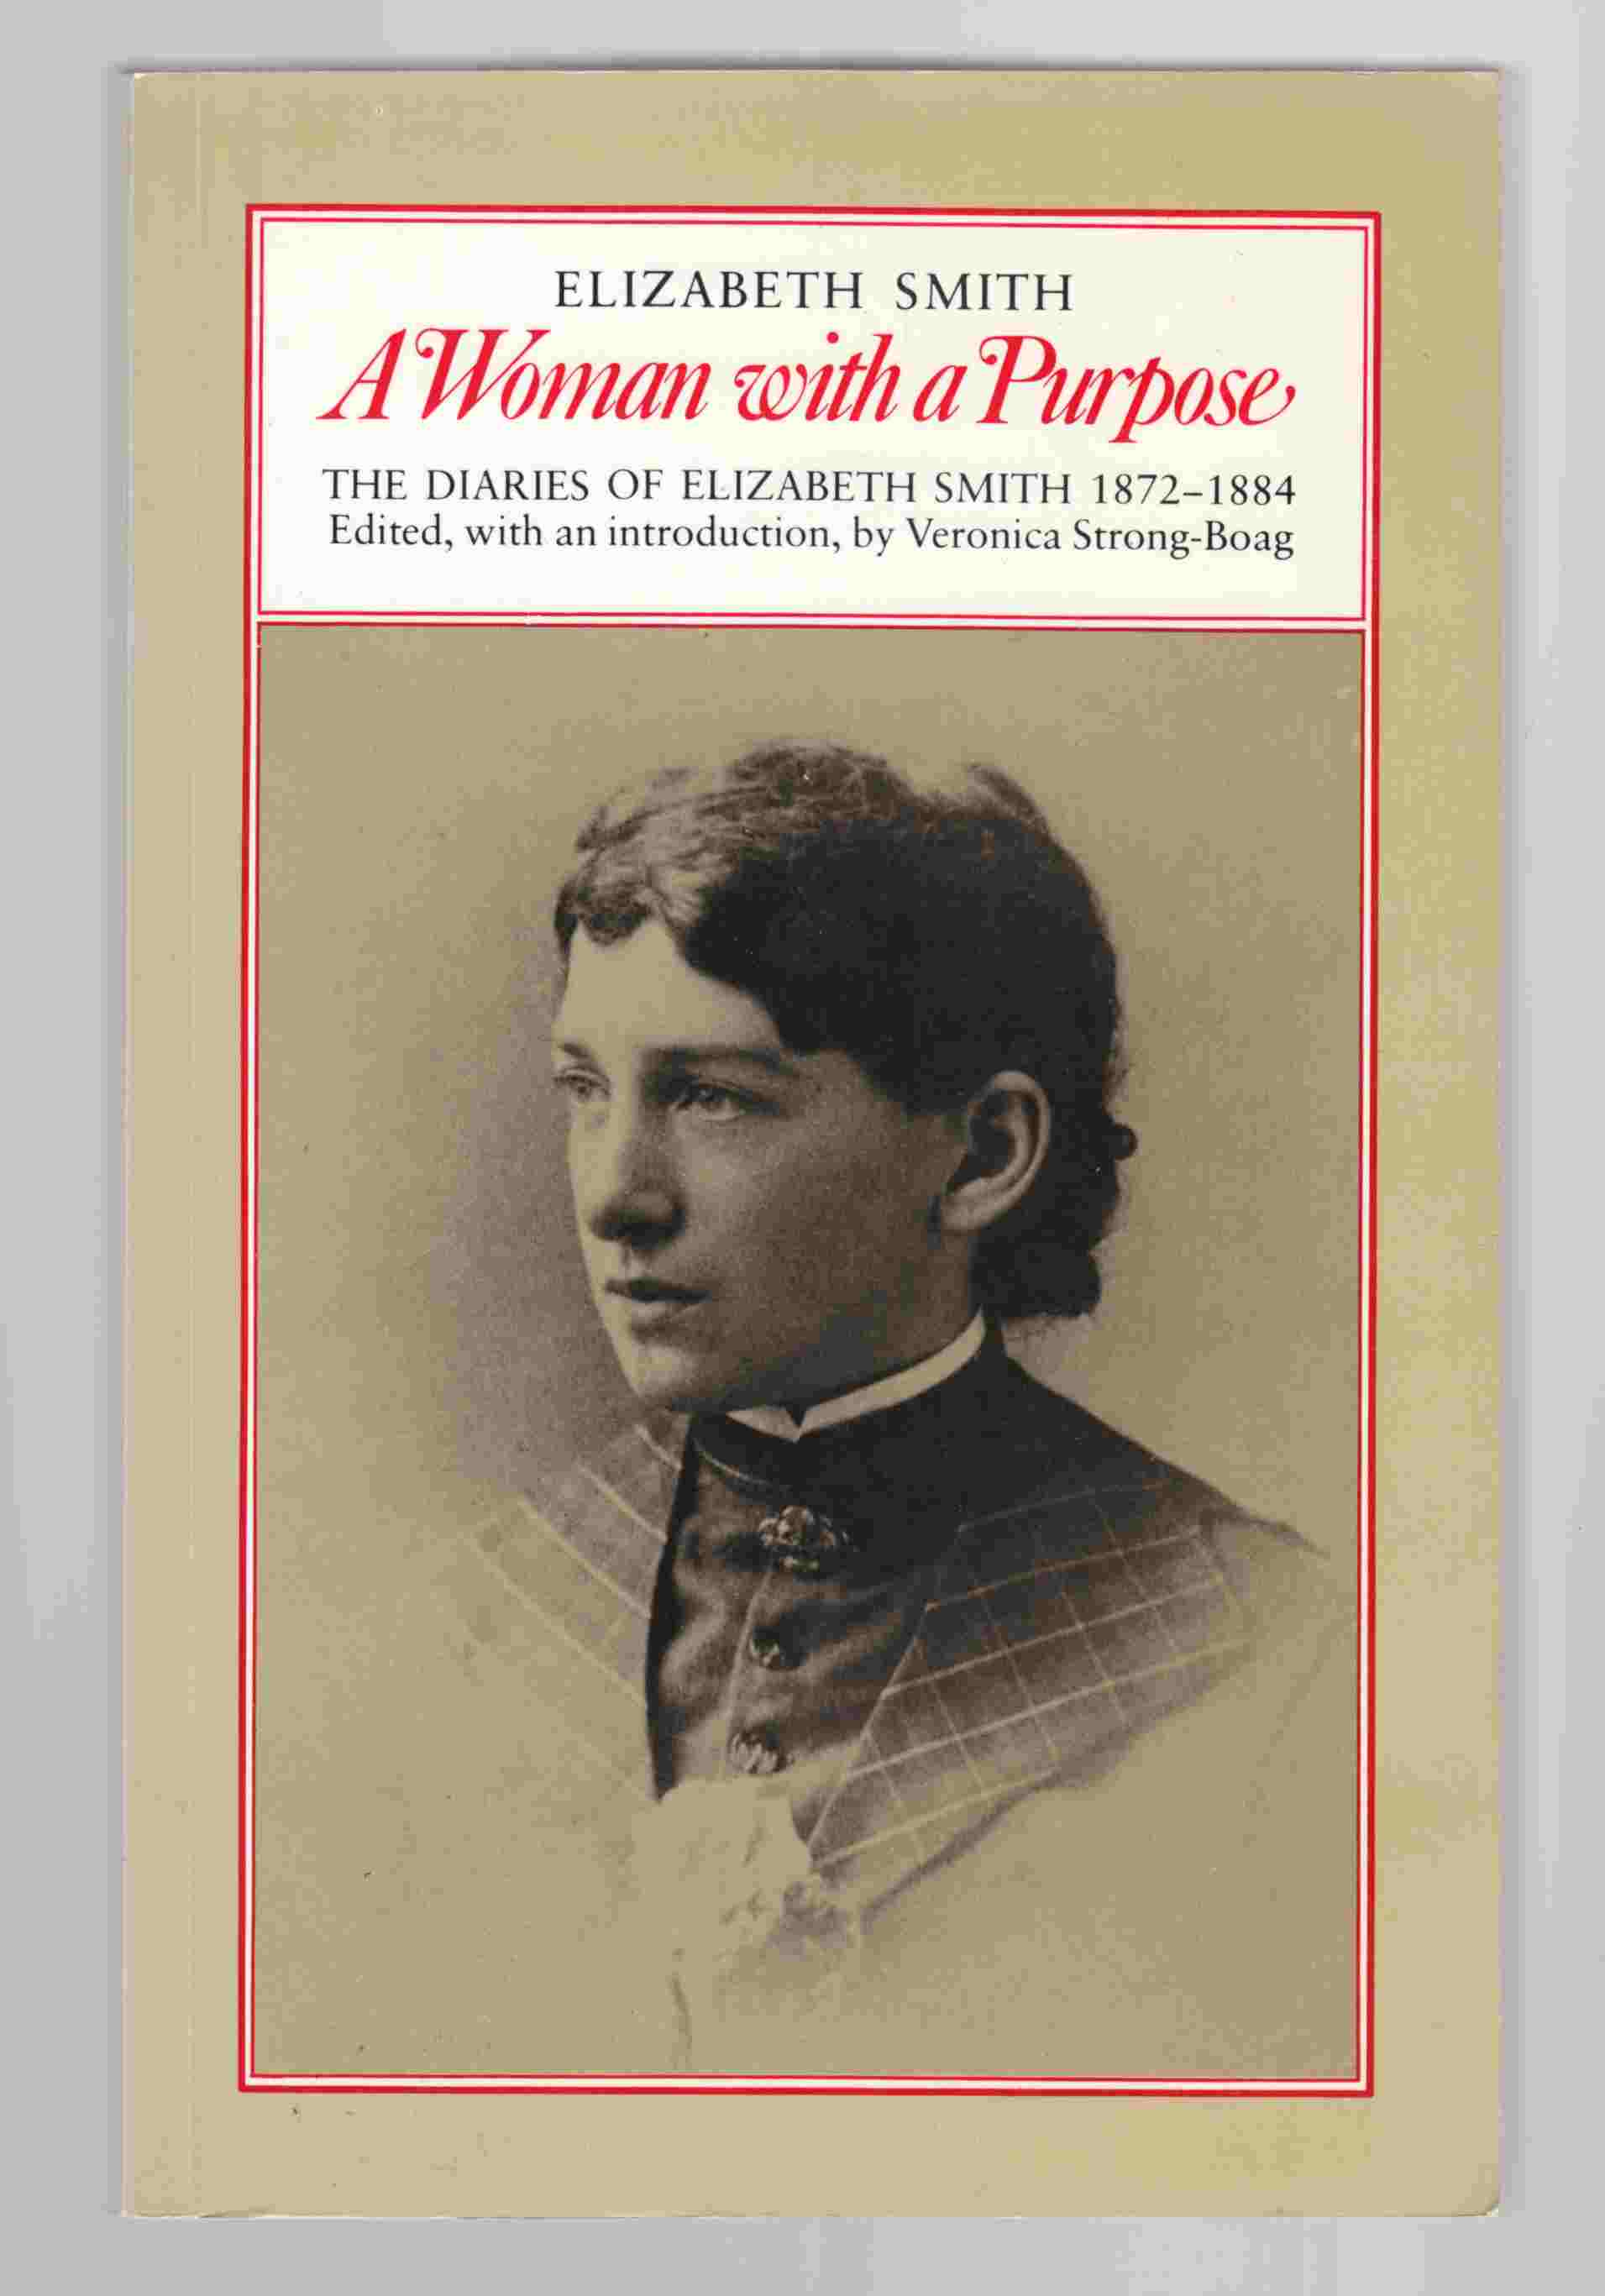 Image for 'A Woman with a Purpose' The Diaries of Elizabeth Smith 1872-1884